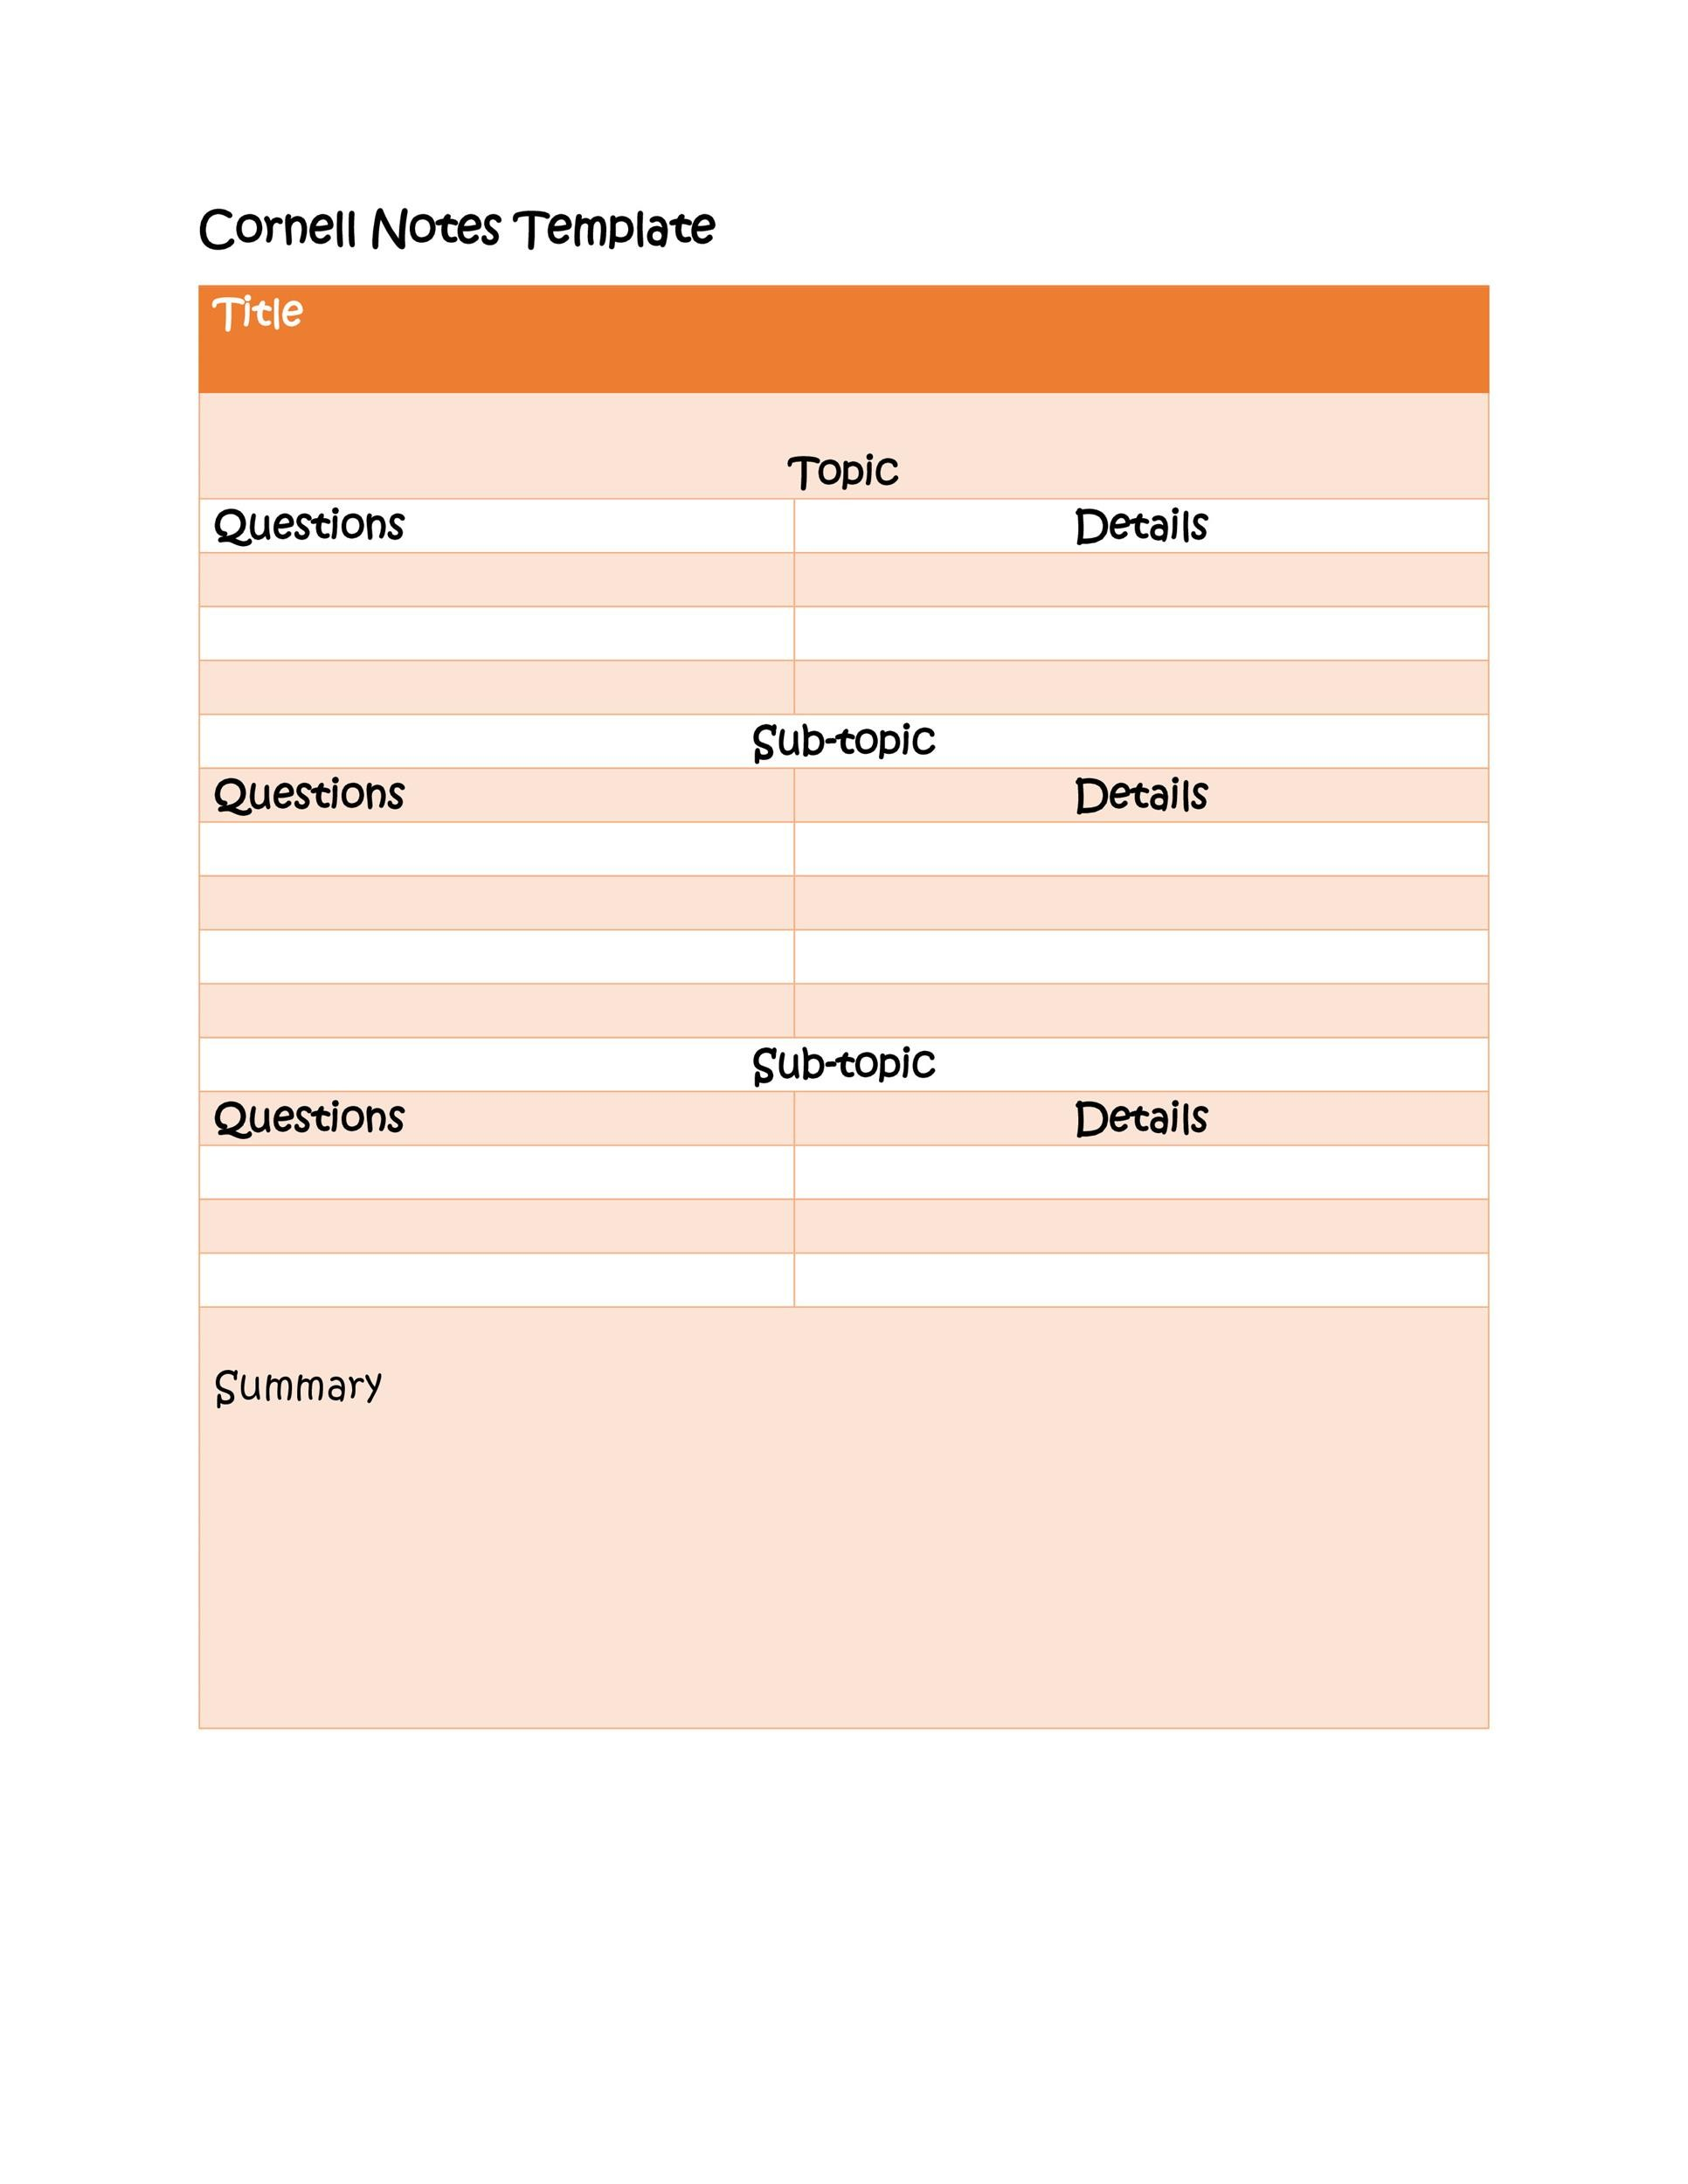 36 Cornell Notes Templates  Examples Word, PDF - Template Lab